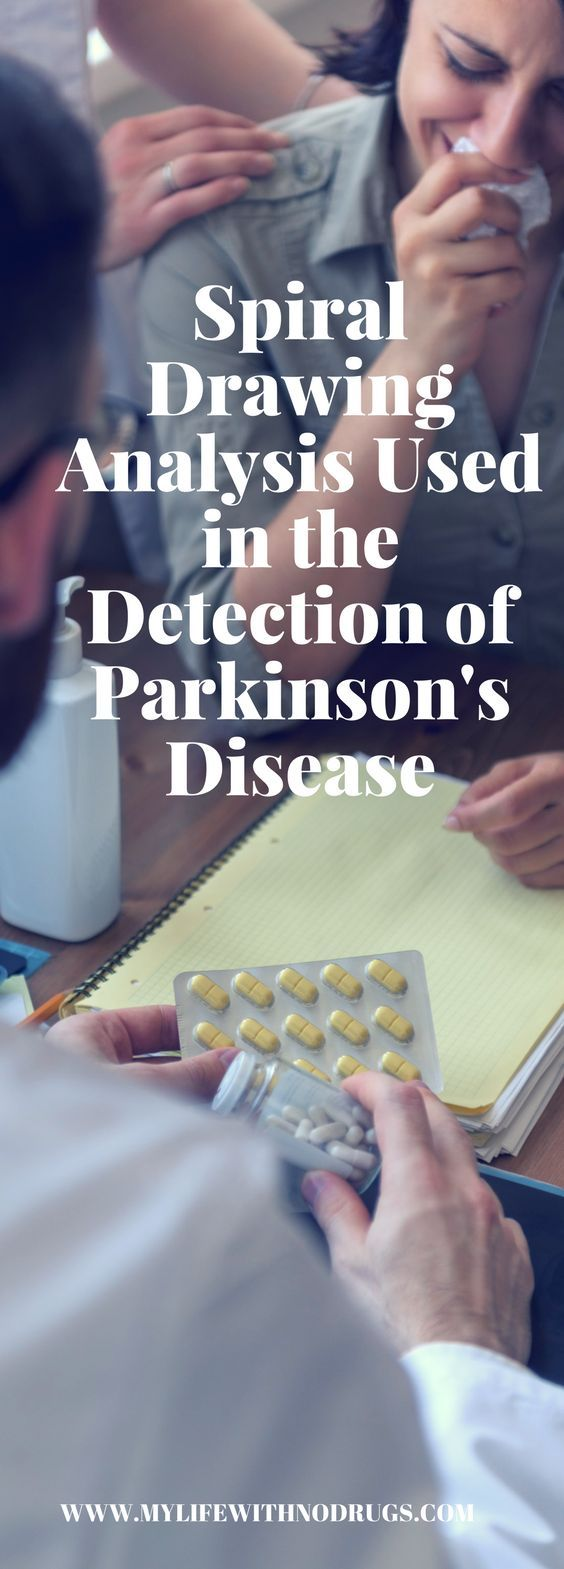 For a long time now, there has been no definite diagnosis for #Parkinson'sdisease. A recent study has however found that it is, in fact, possible to detect this disorder by drawing a simple spiral.